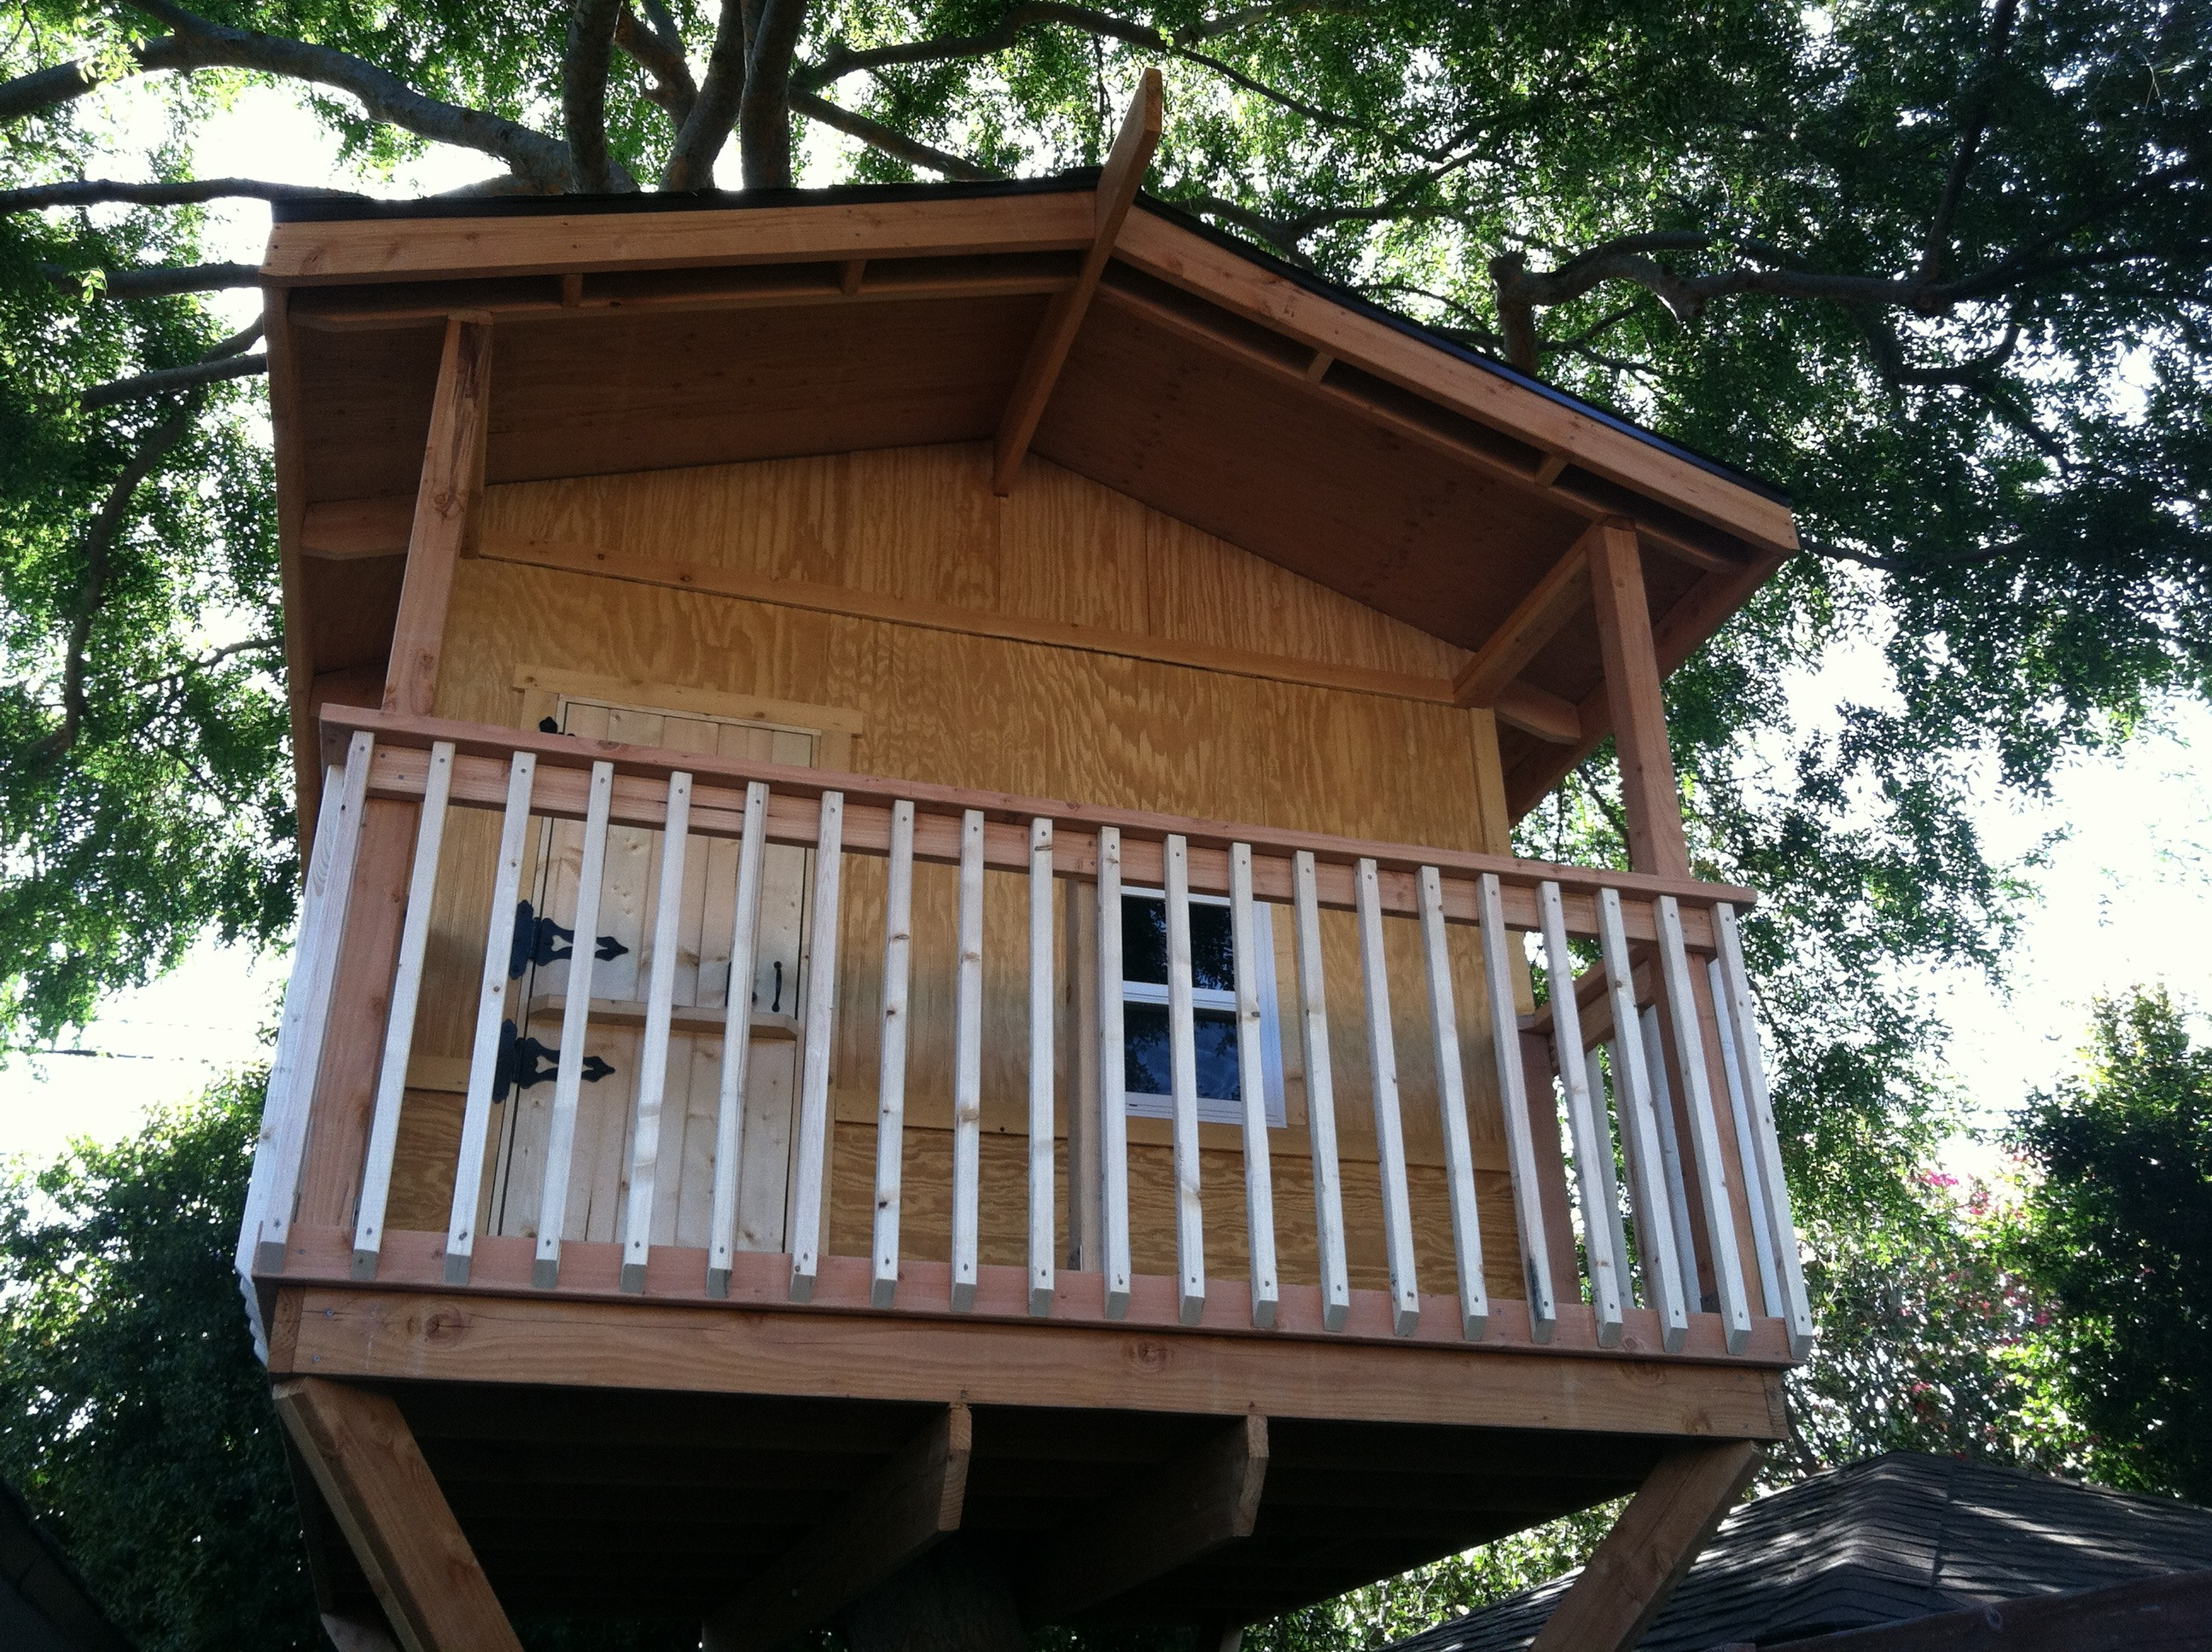 Building A Treehouse 8 Steps With Pictures Instructables